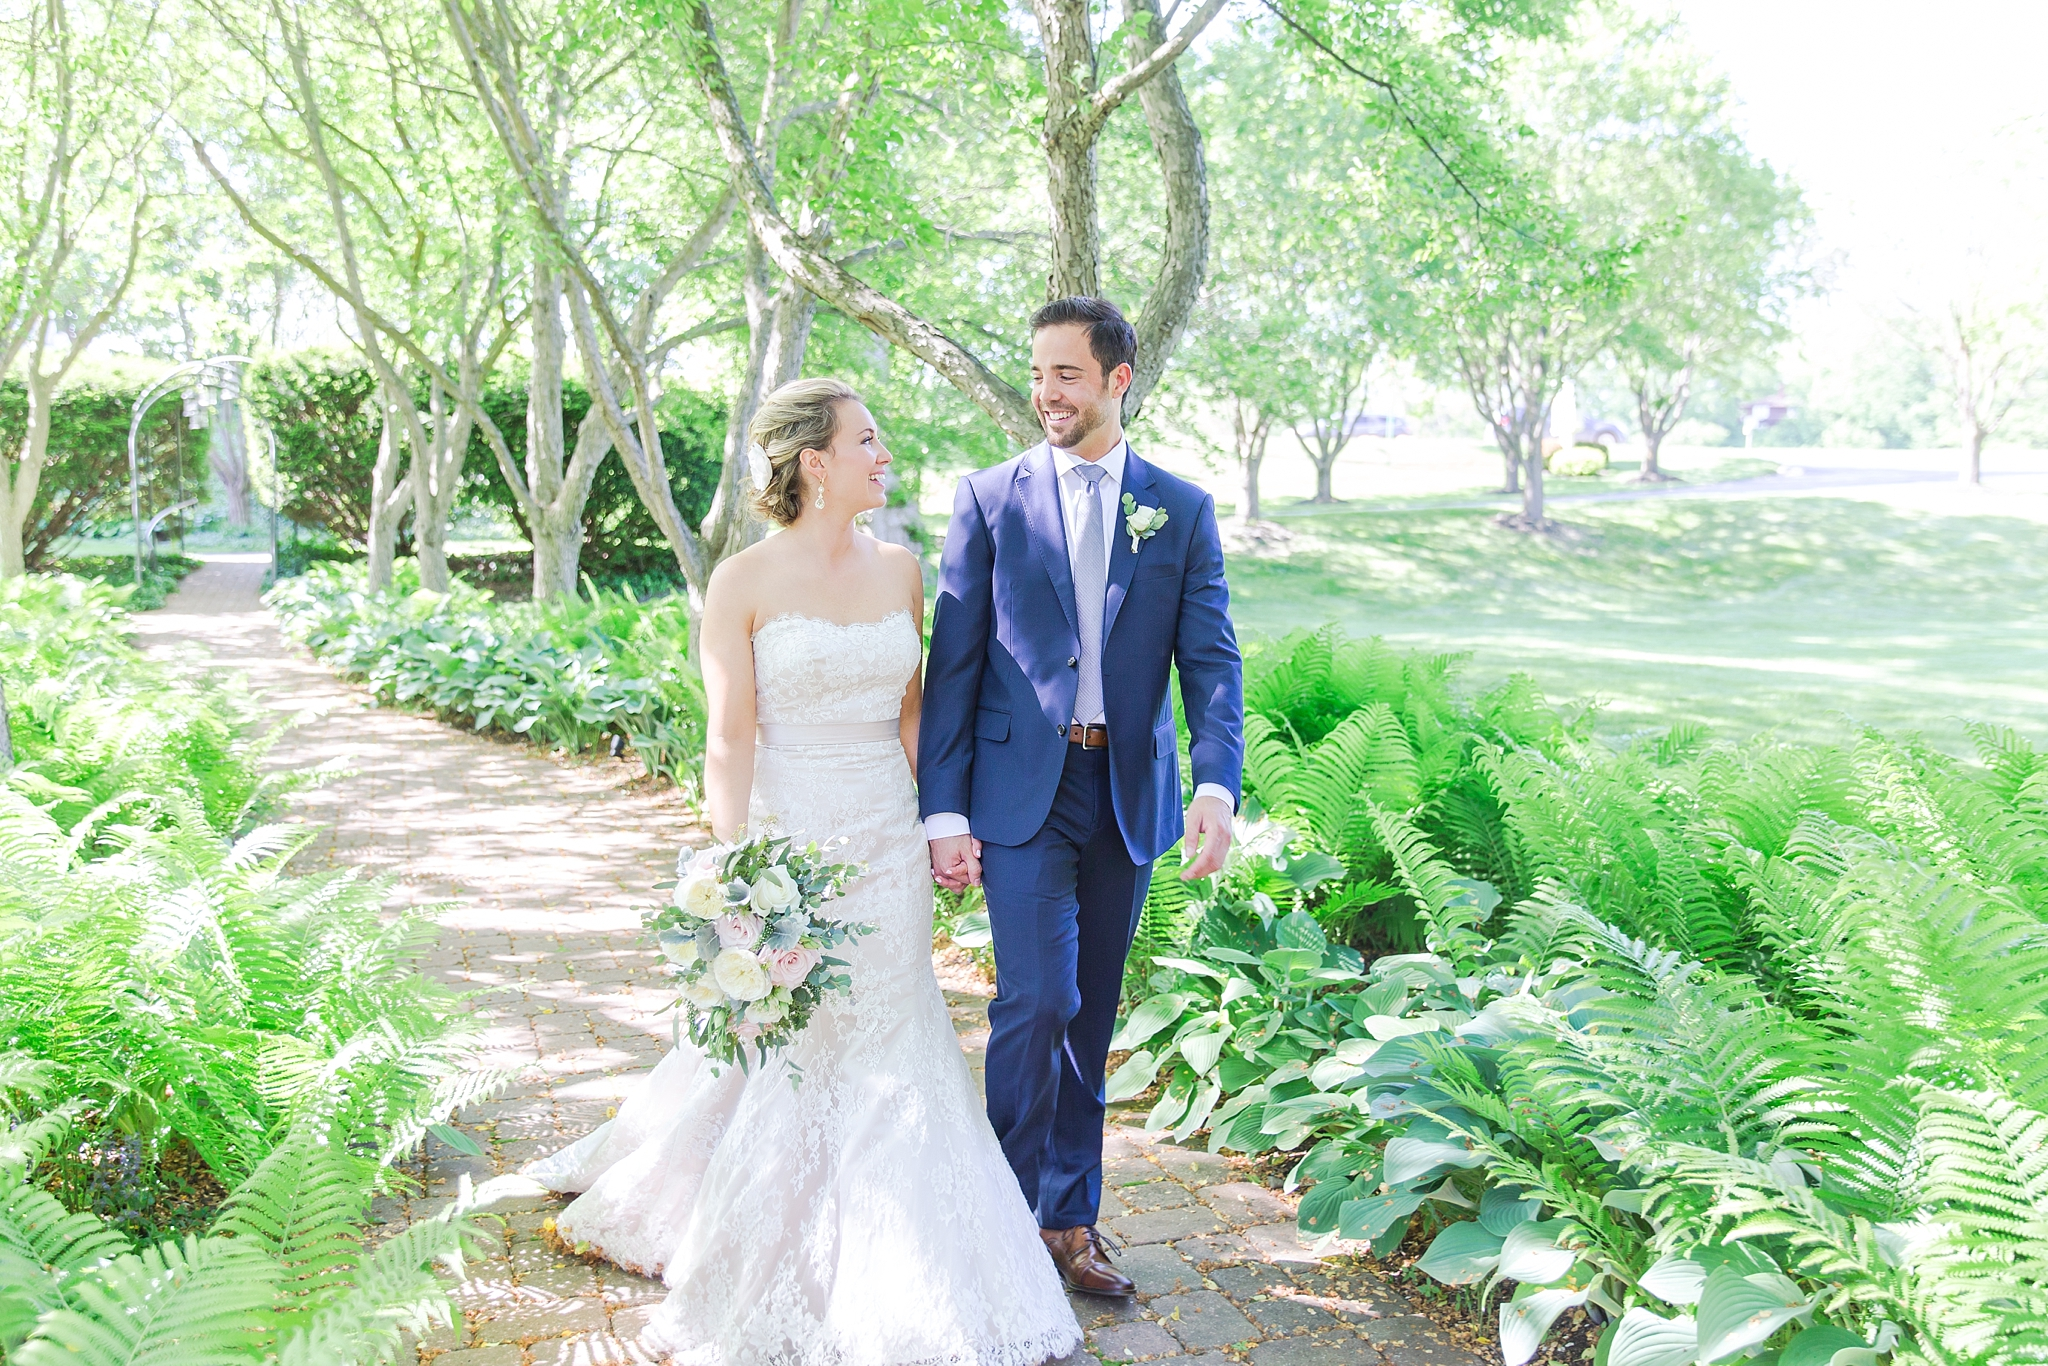 fun-candid-laid-back-wedding-photos-at-wellers-carriage-house-in-saline-michigan-and-at-the-eagle-crest-golf-resort-by-courtney-carolyn-photography_0042.jpg